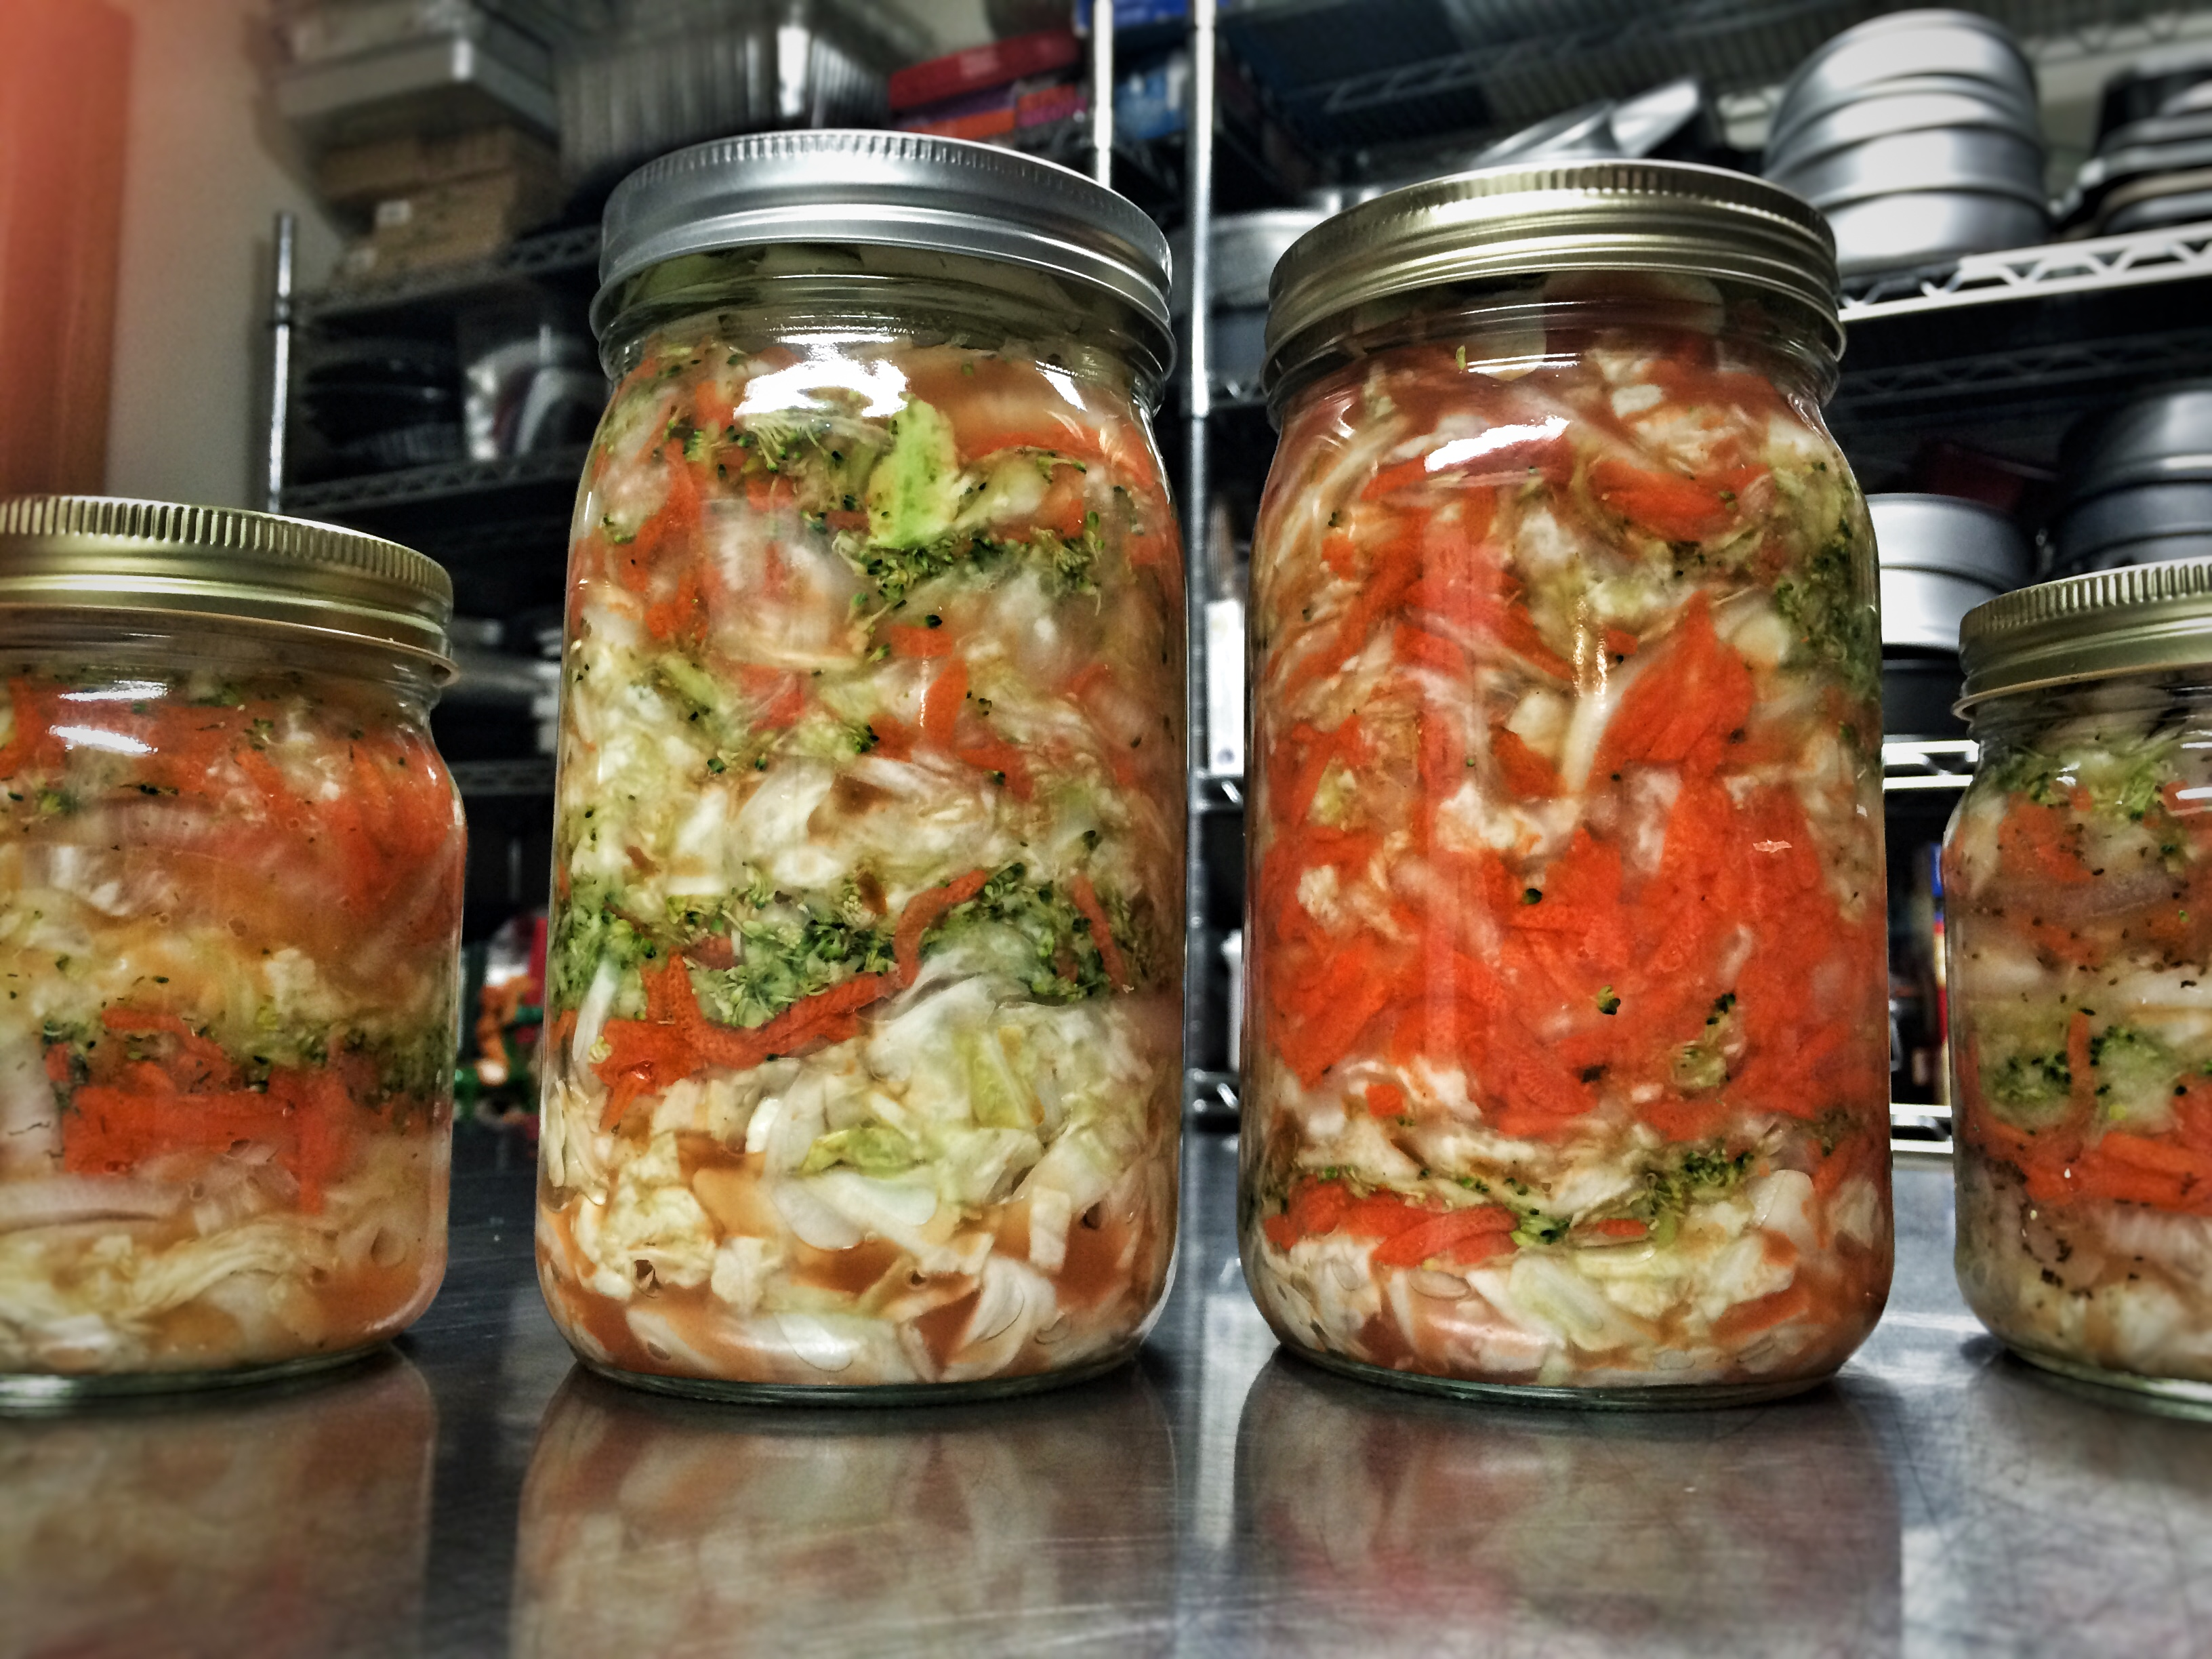 First batch of sauerkrat